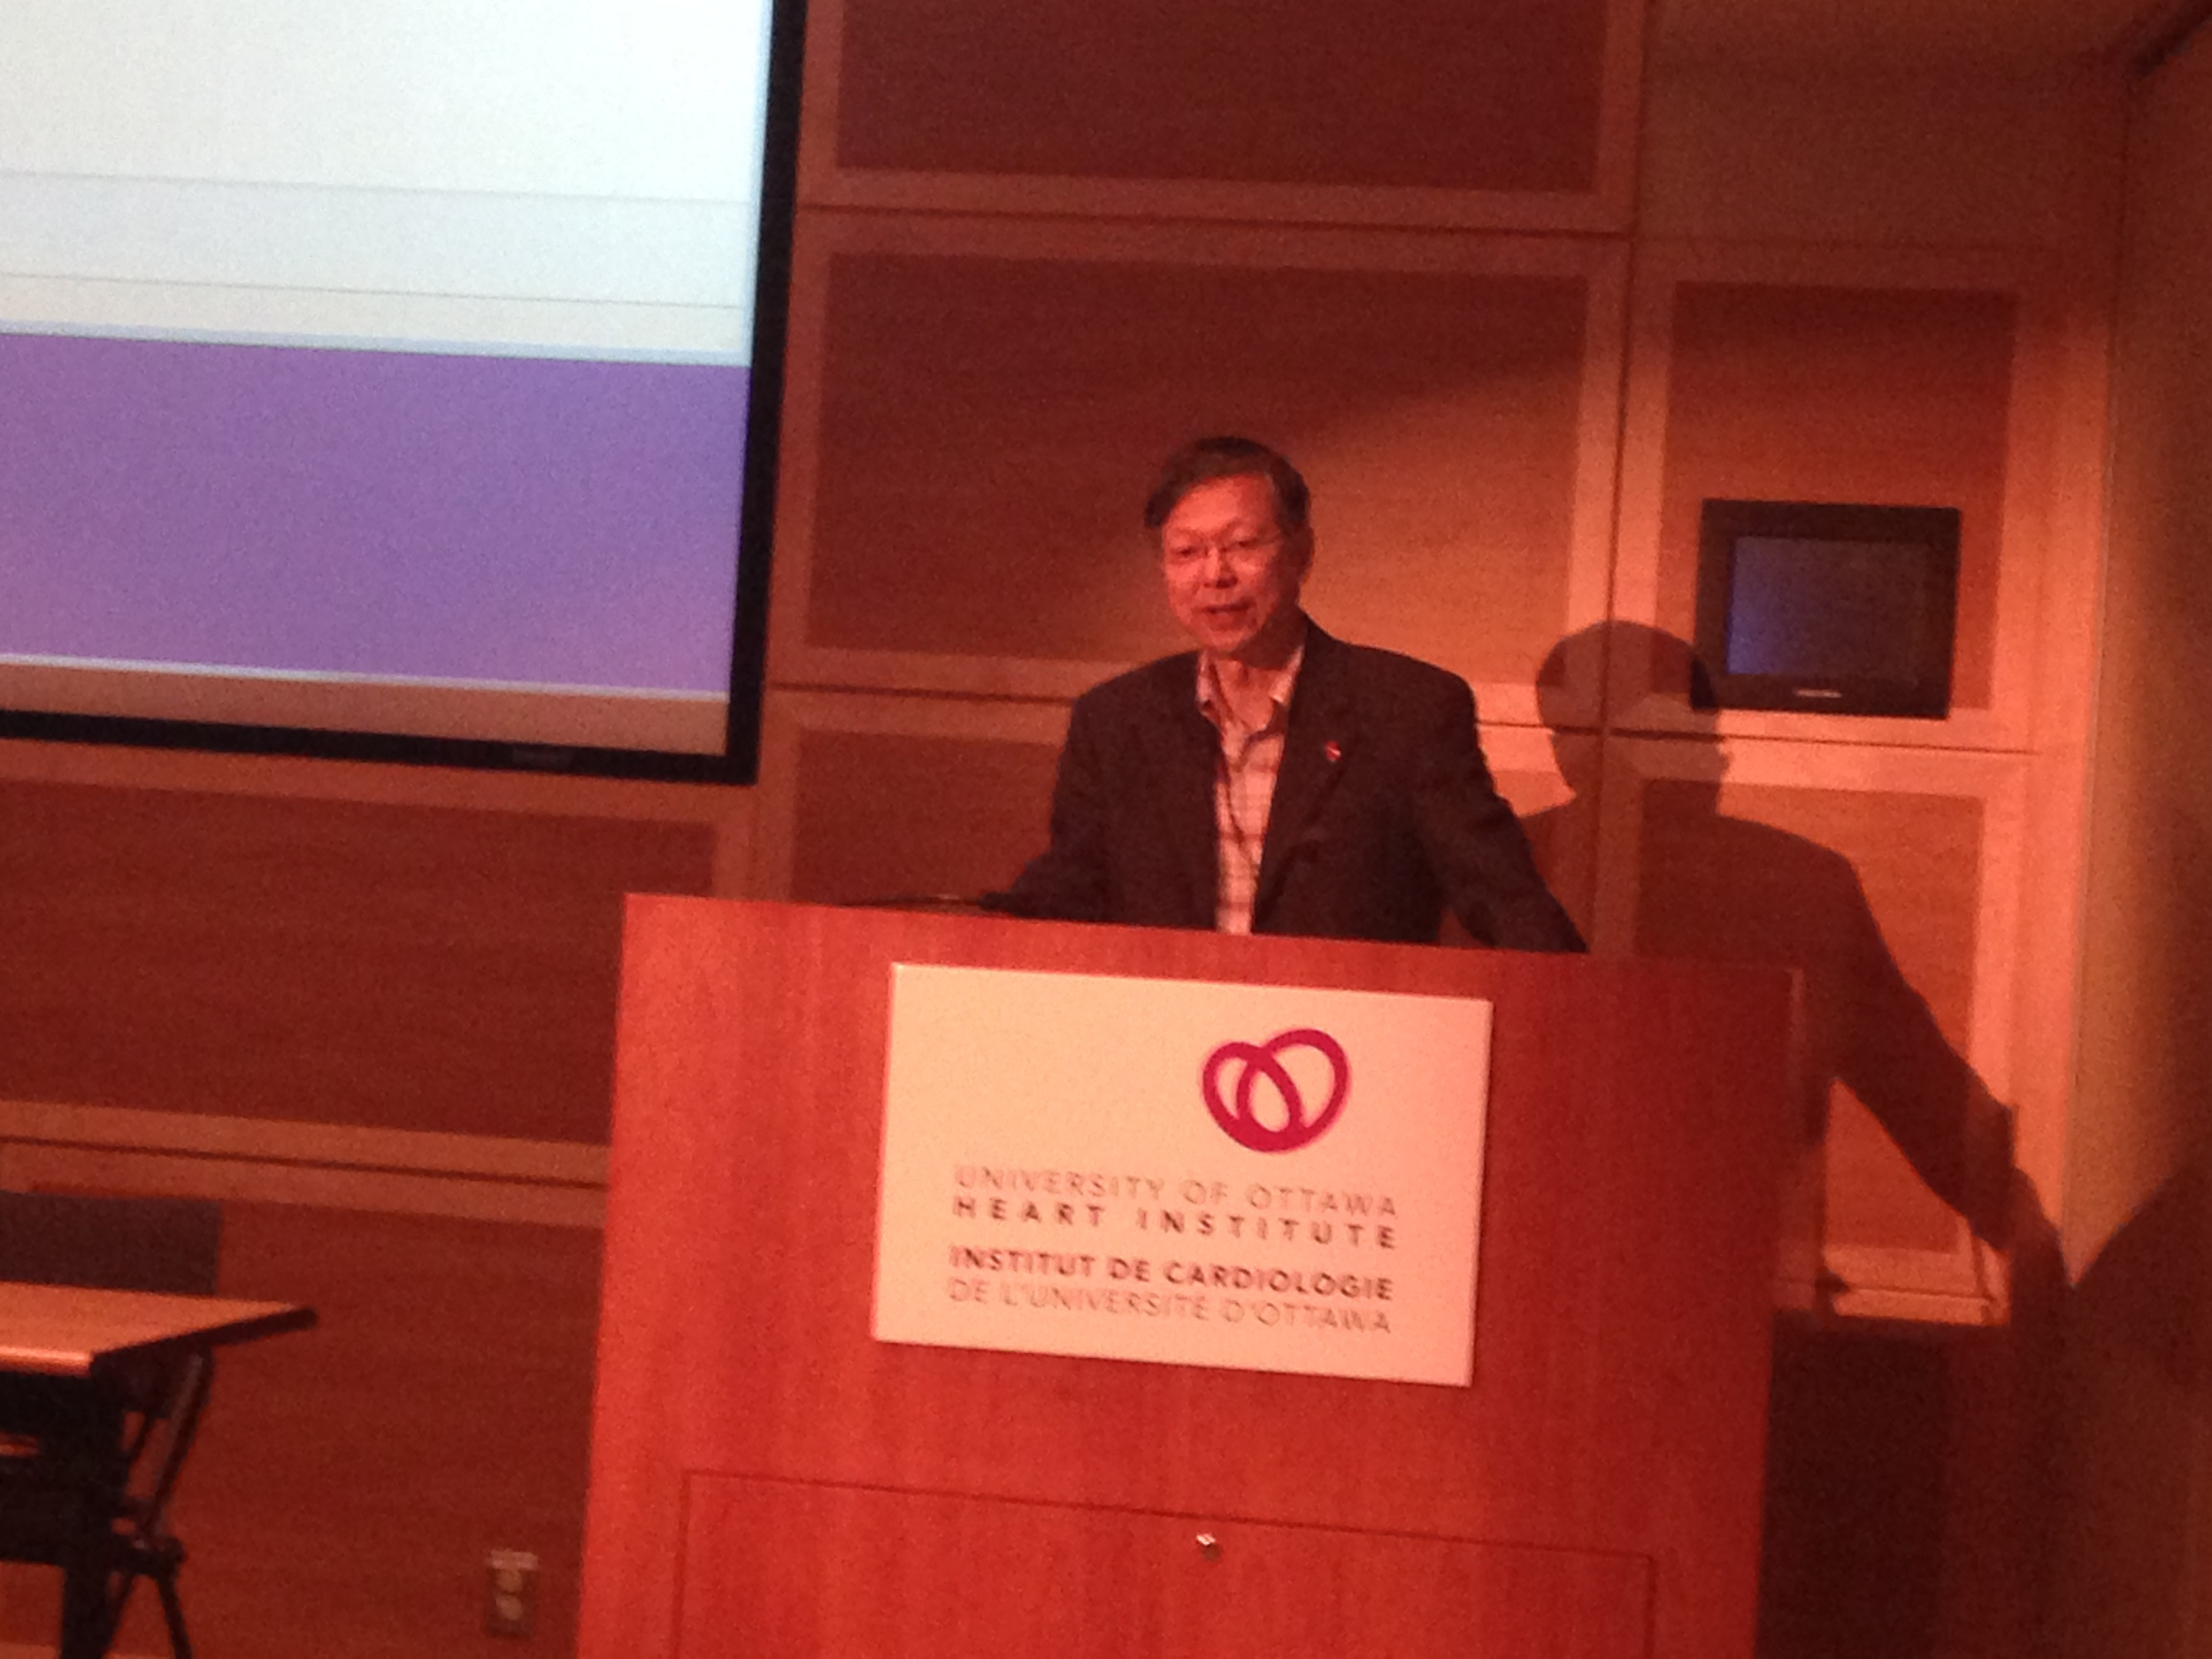 Dr Kwan-Leung Chan, UOHI - Symptoms, Diagnosis and Management of Marfan Syndrome